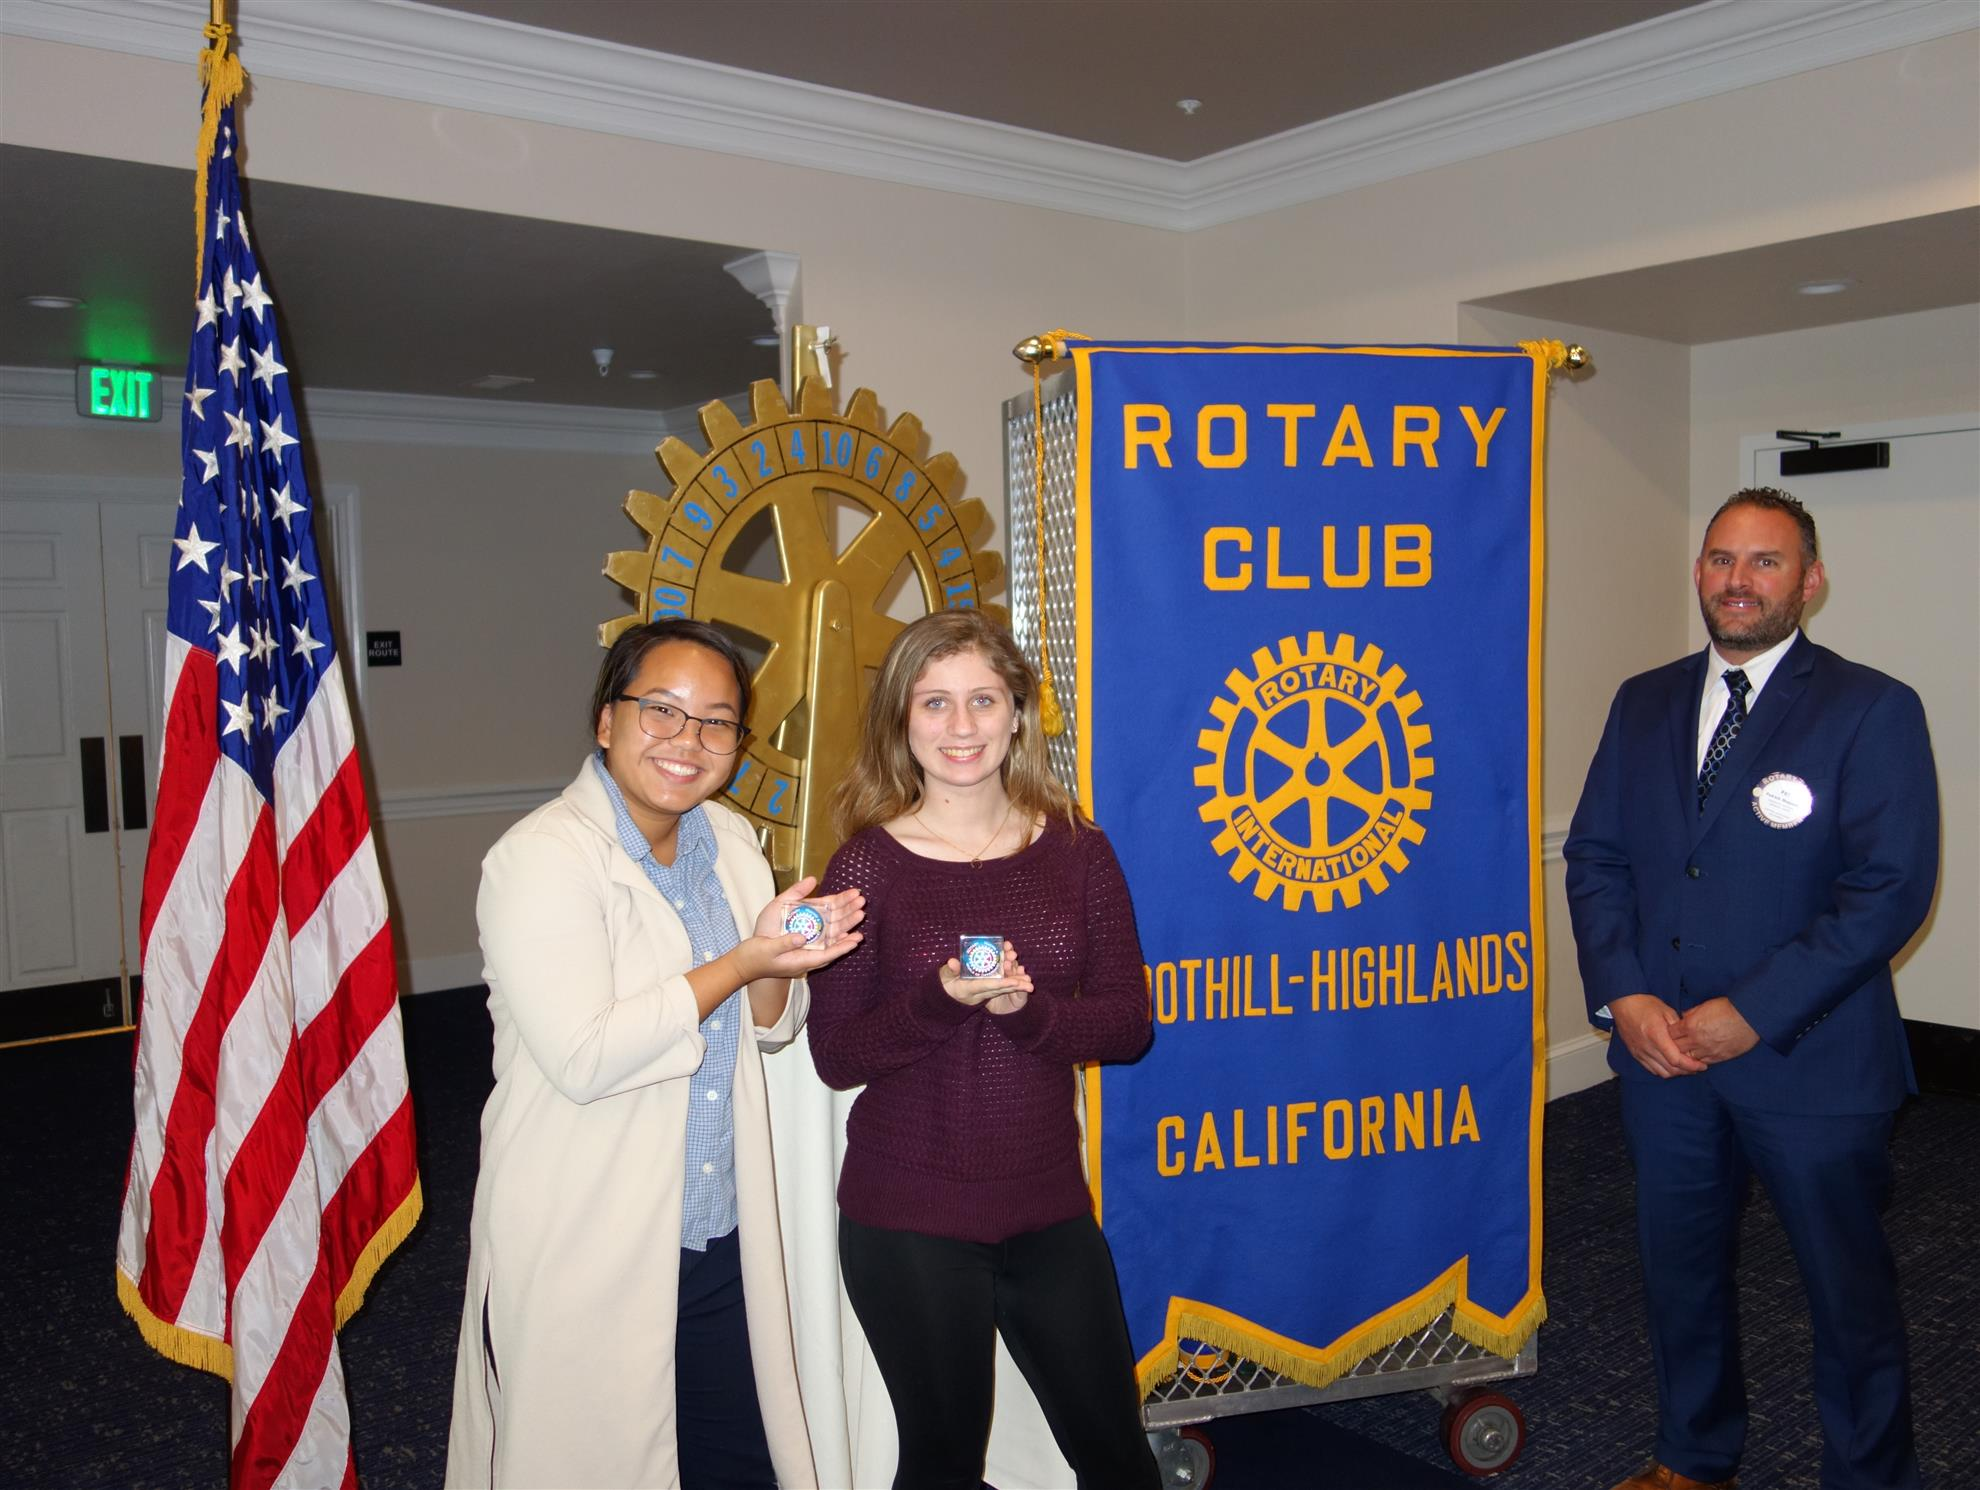 Stories | Rotary Club of Foothill Highlands